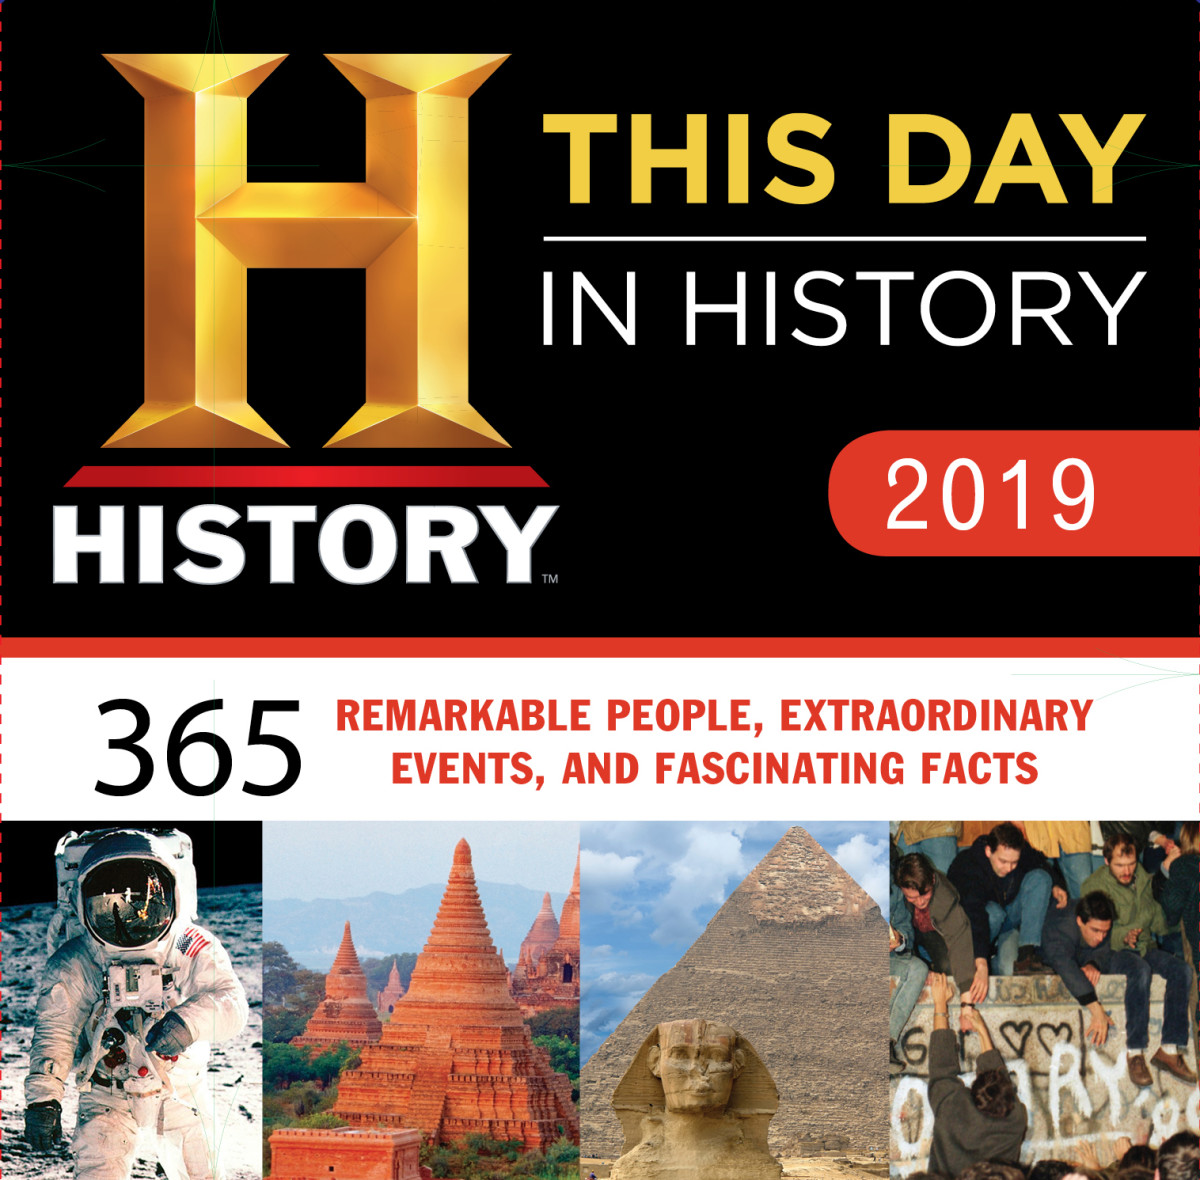 This Day in History Box Calendar